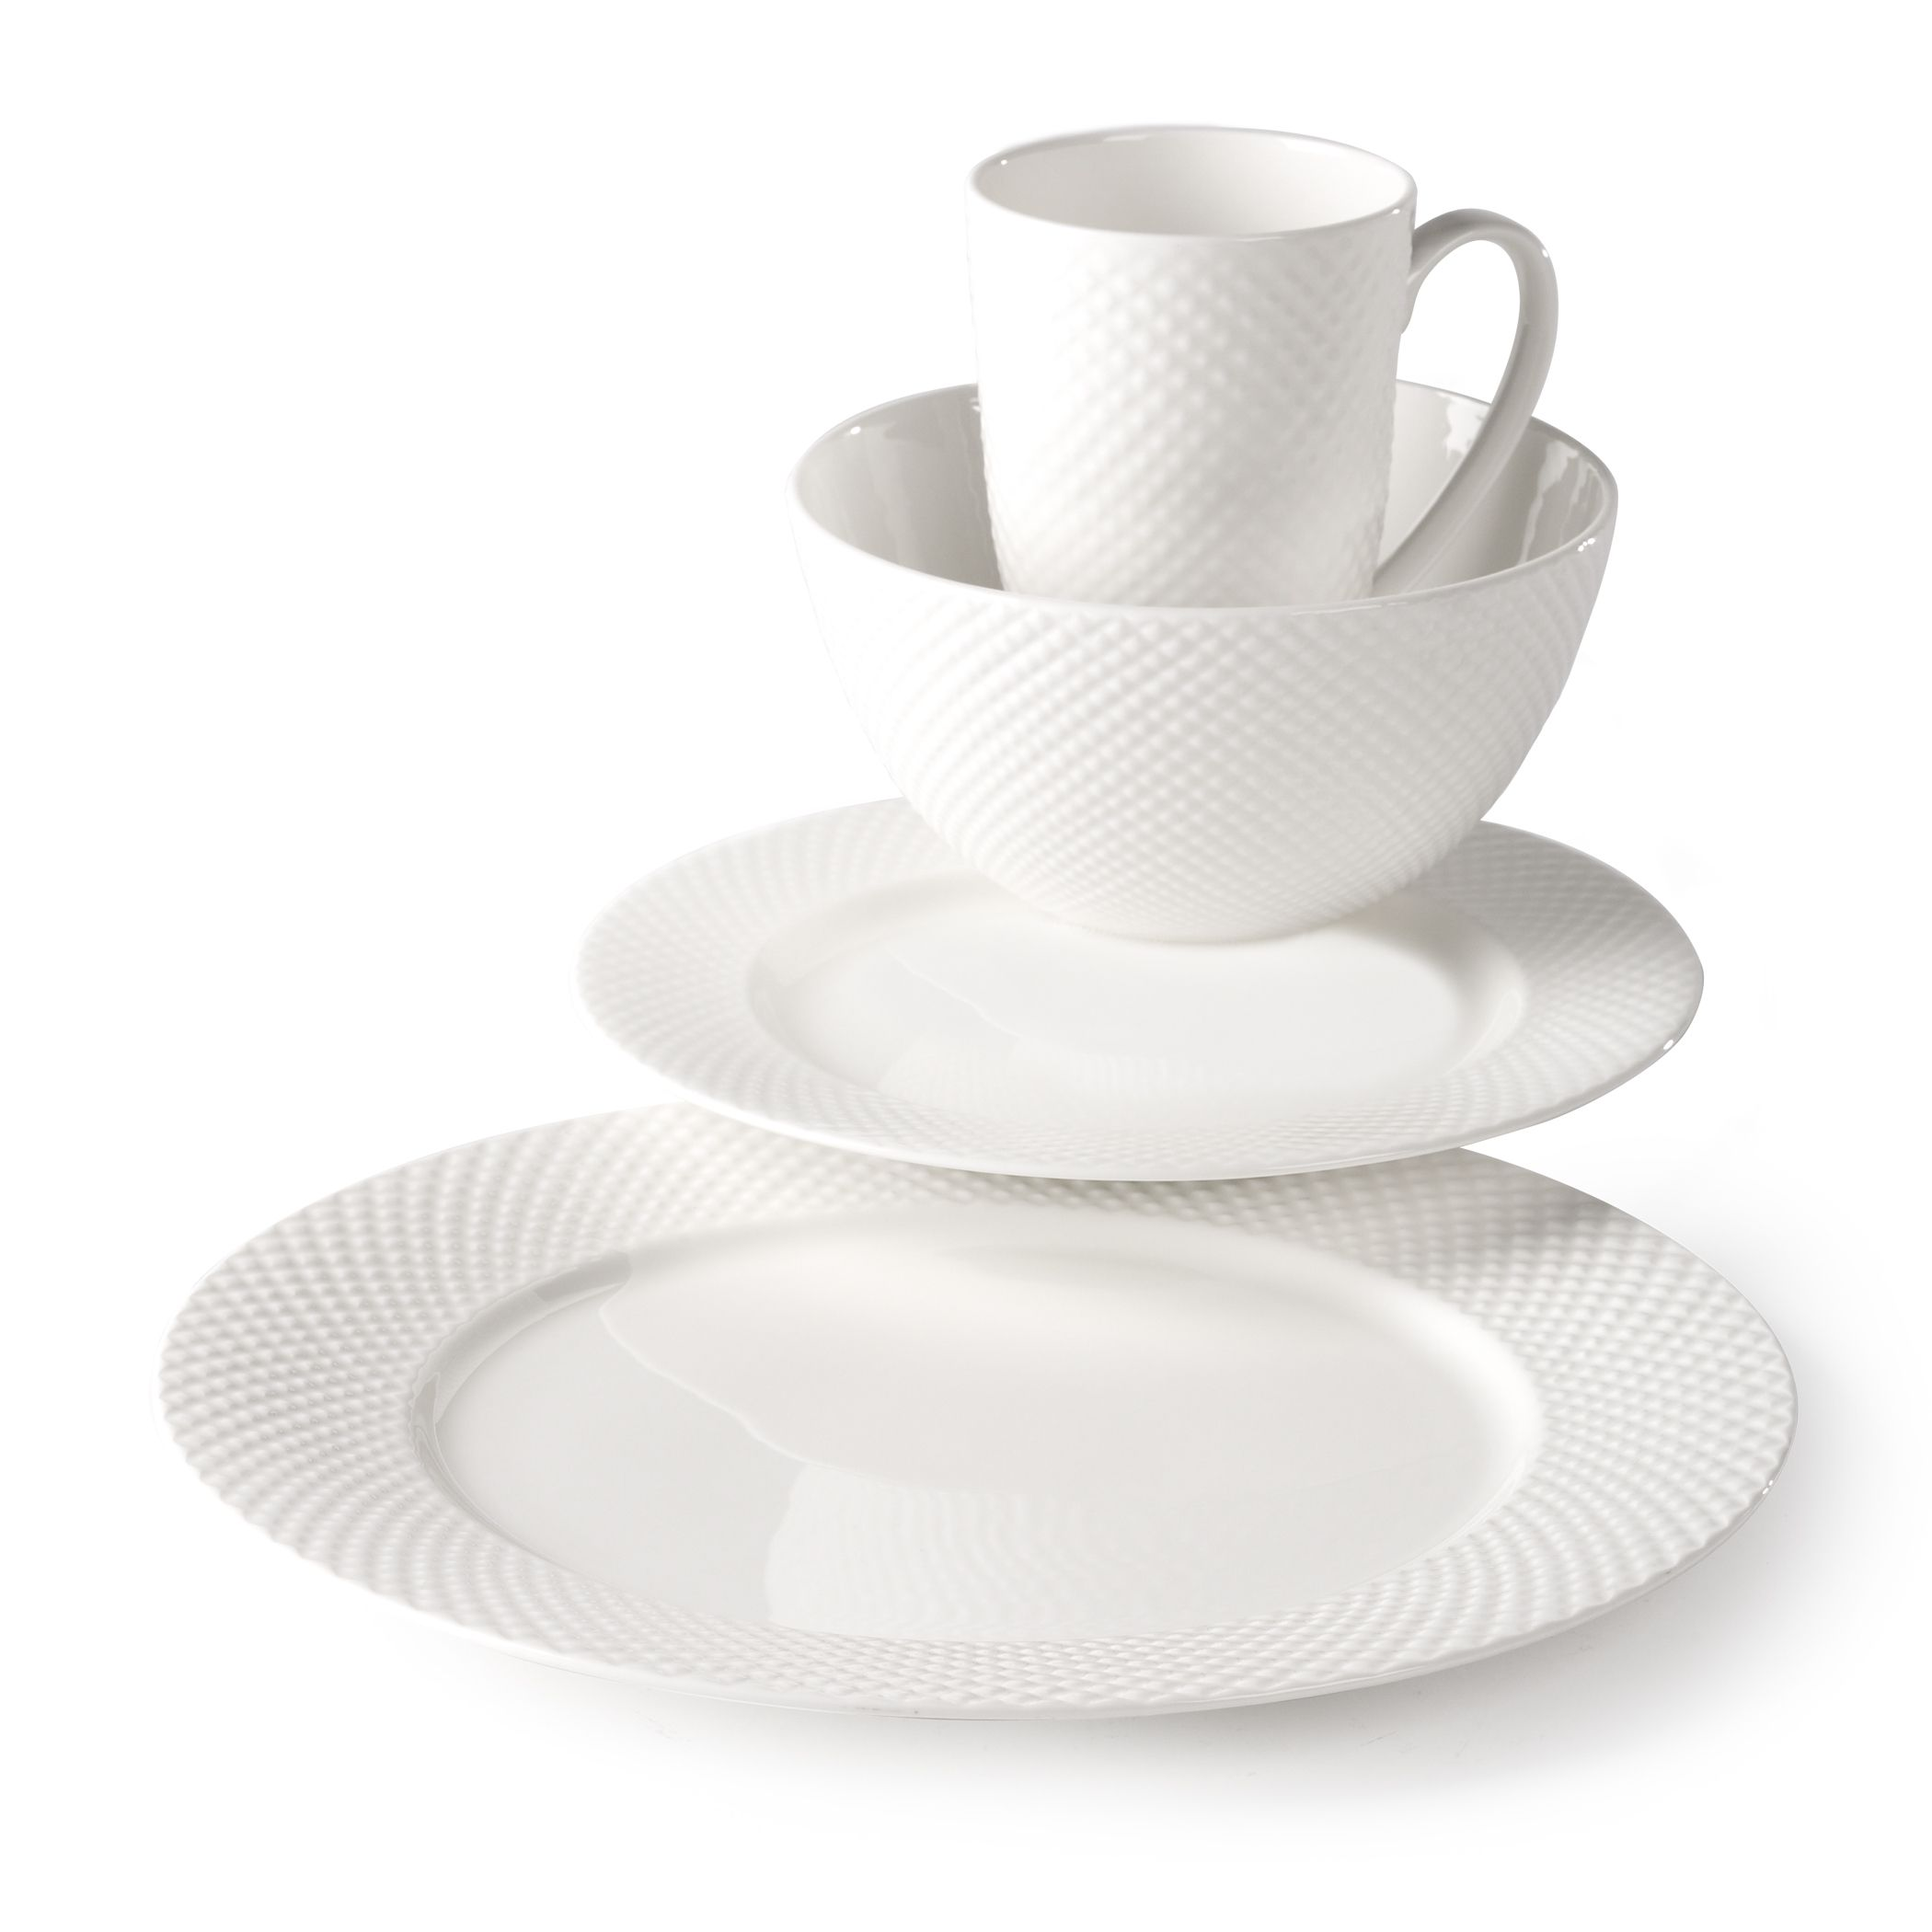 Now enjoy a stronger more affordable bone china for everyday use with this specially formulated Emilia 16-piece Bone China Dinnerware Set by Studio TU.  sc 1 st  Pinterest & Now enjoy a stronger more affordable bone china for everyday use ...